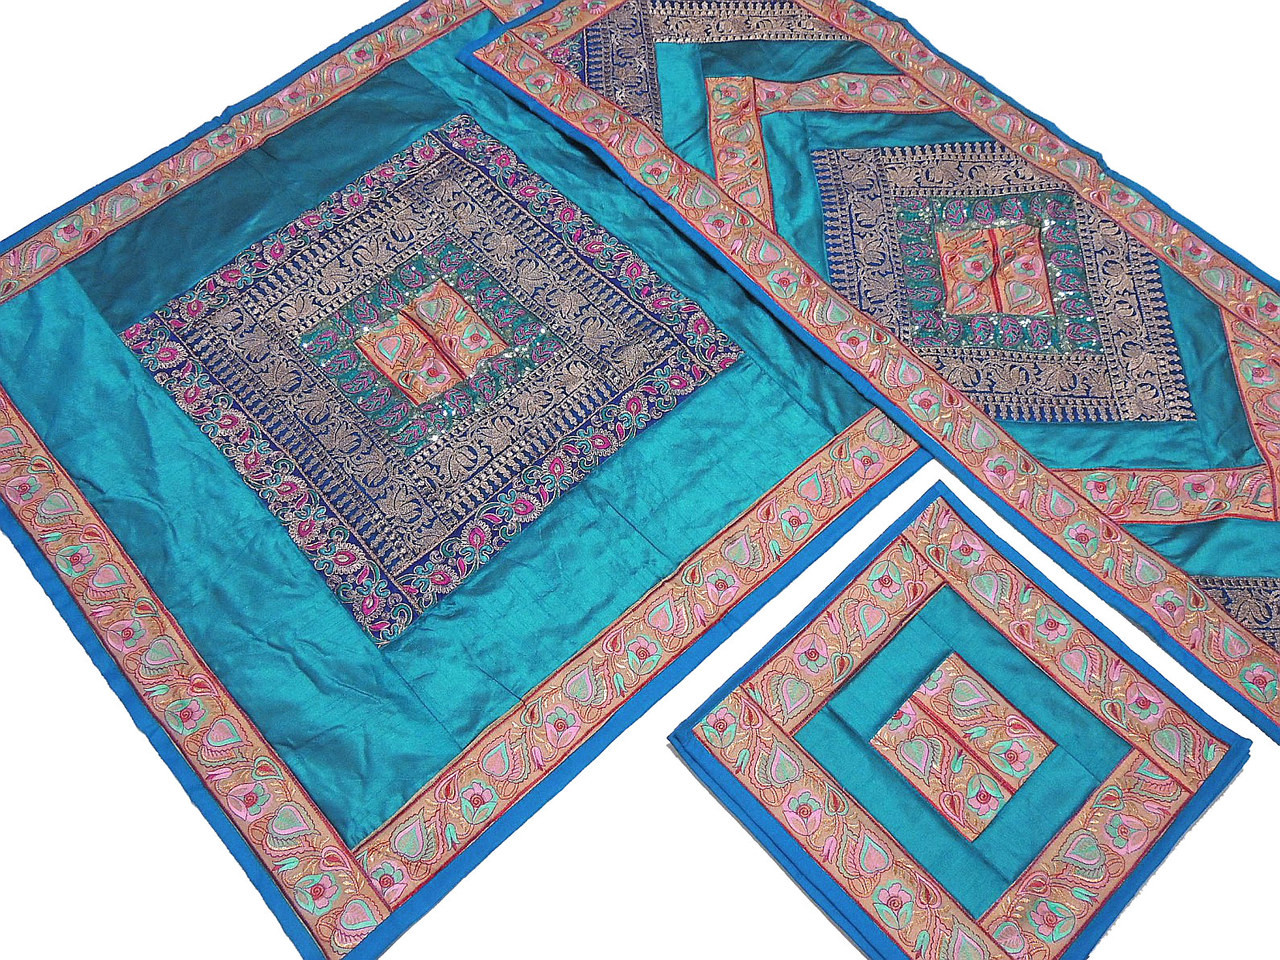 Teal Pretty Table Linens Set   Indian Embroidered Tablecloth Runner 4  Placemats.